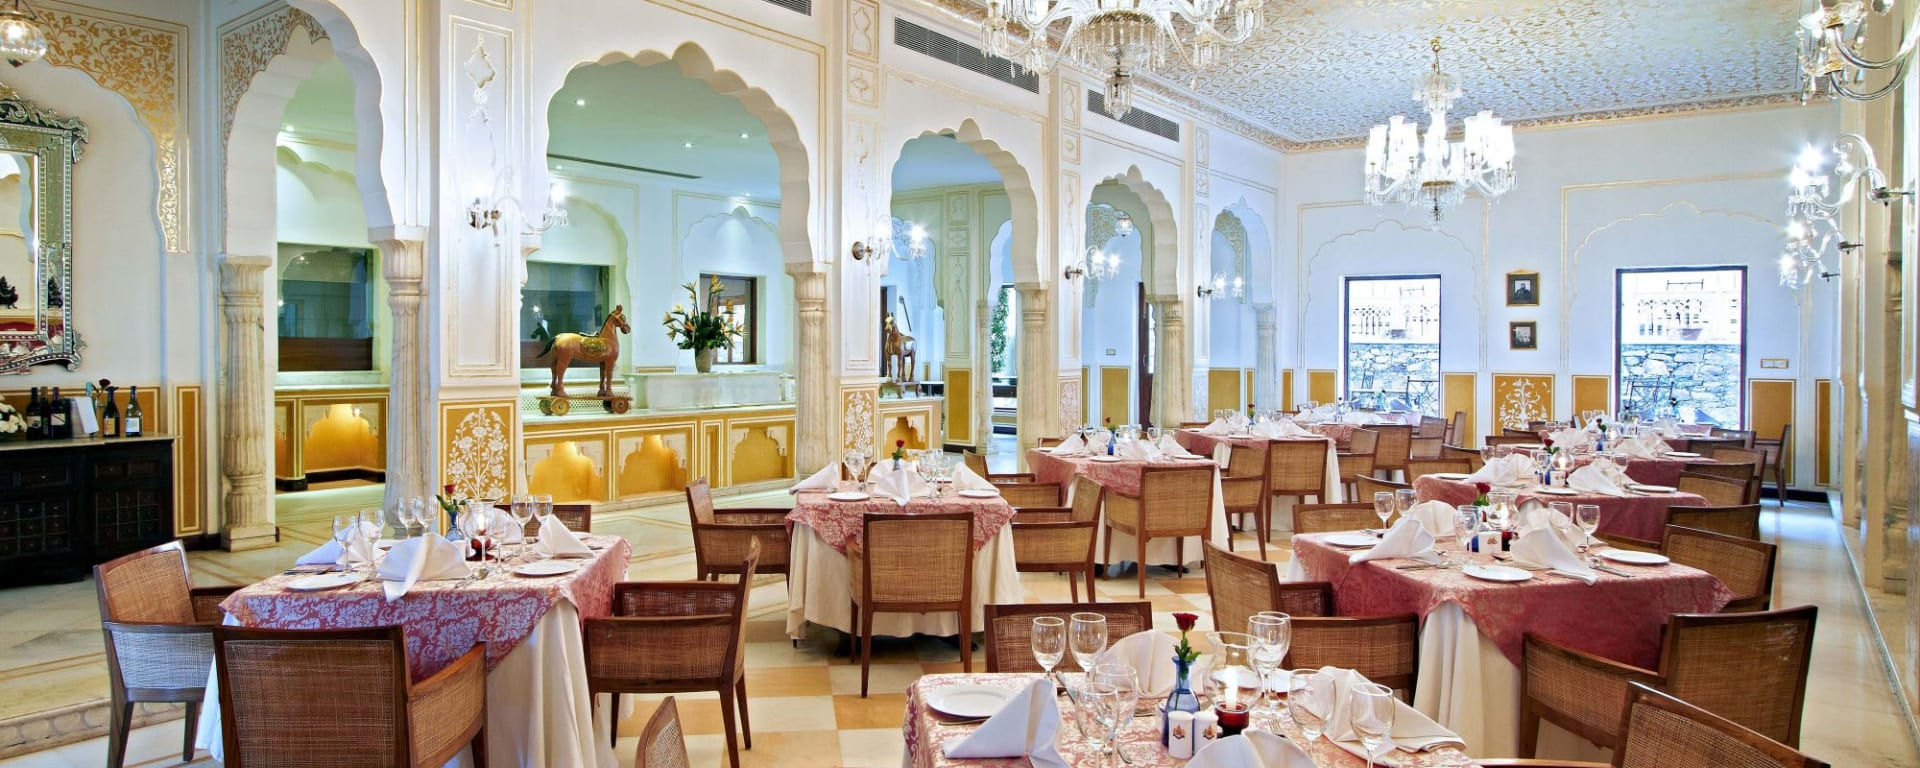 Samode Palace in Jaipur: Dining hall